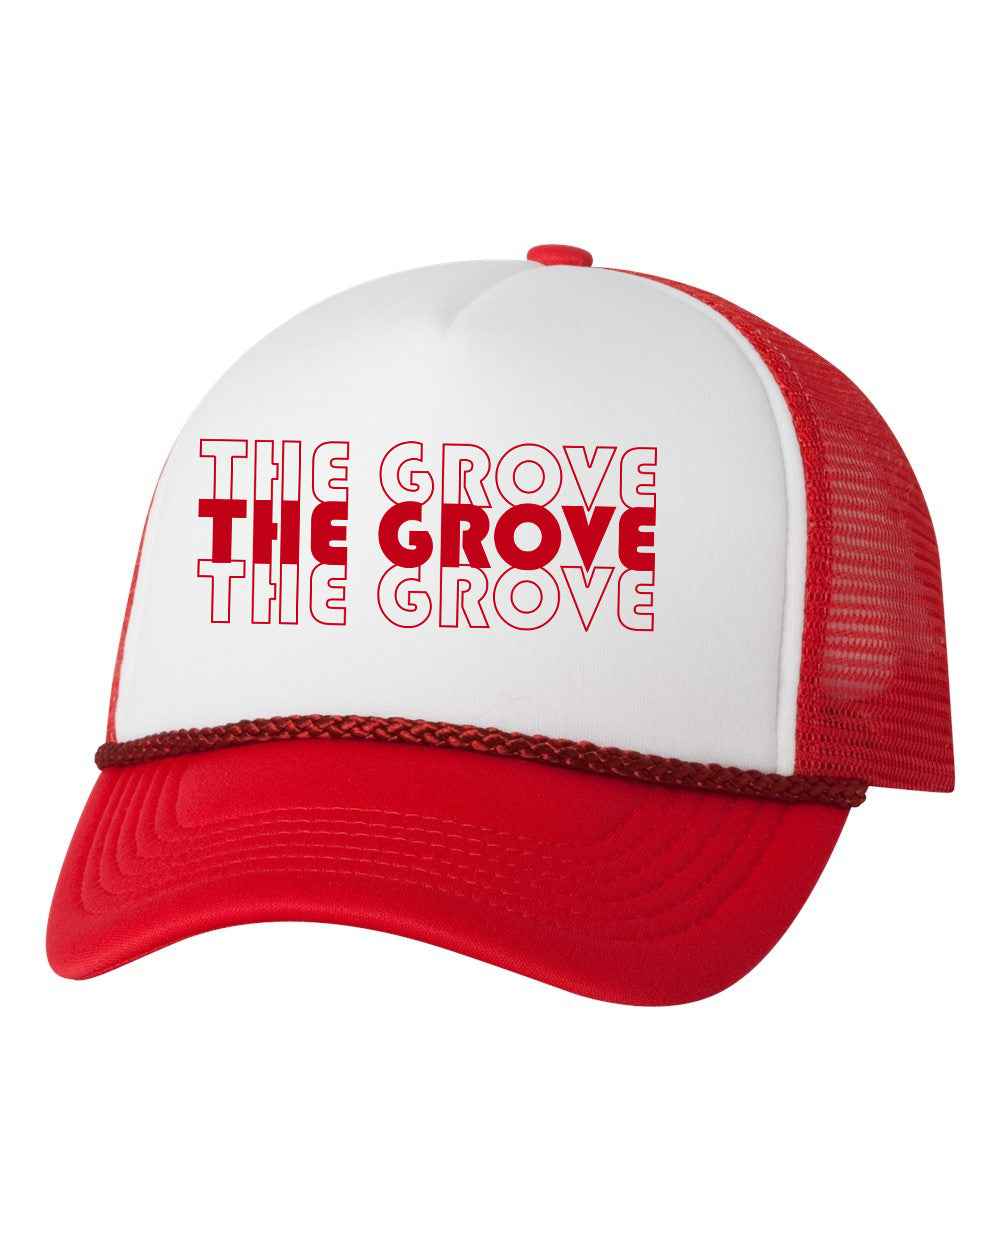 The Grove - Hat